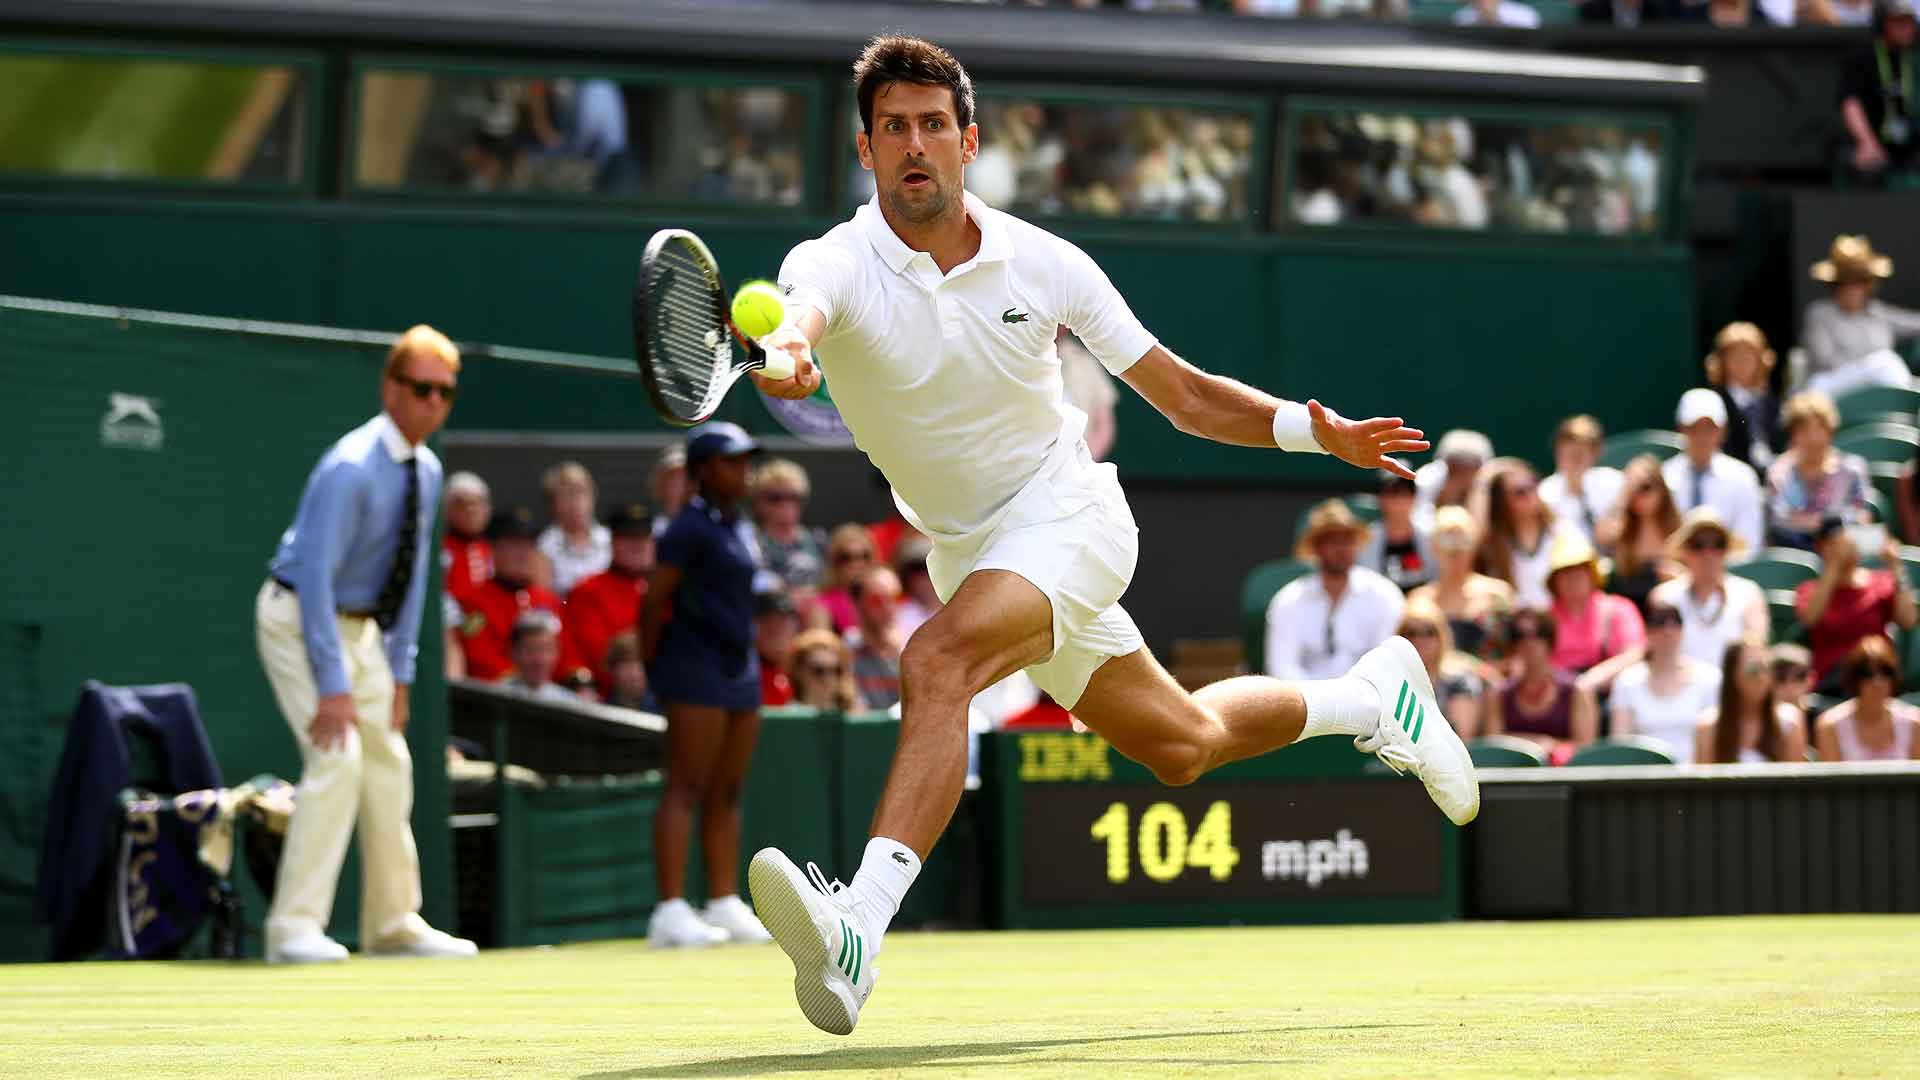 Fresh off his �� run in Eastbourne, @DjokerNole advances to #Wimbledon R2. More: https://t.co/EXwlmqN2rw https://t.co/JoOQhqhJ6V